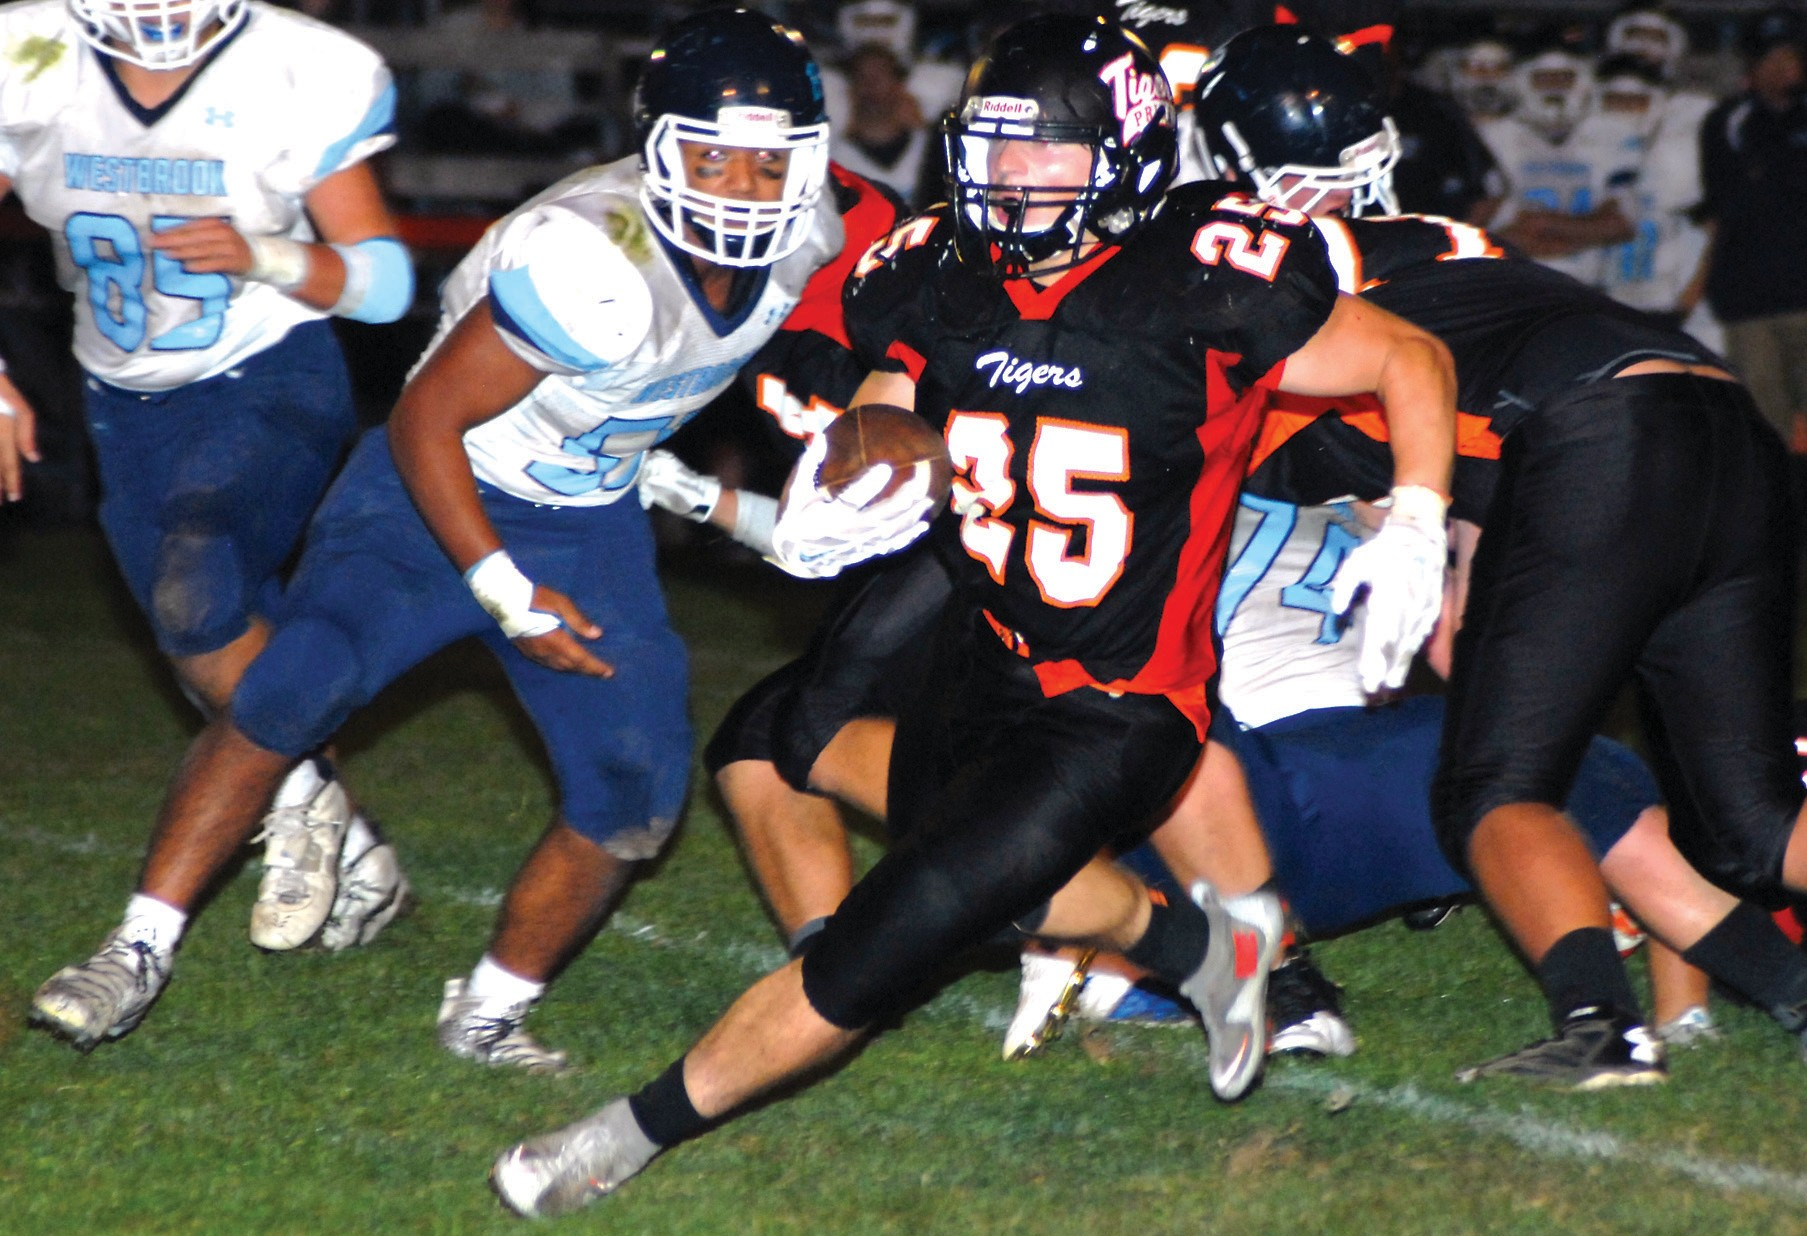 Biddeford's Lucas Rhoy sprints for a 22- yard touchdown against Westbrook on Friday night at Waterhouse Field.